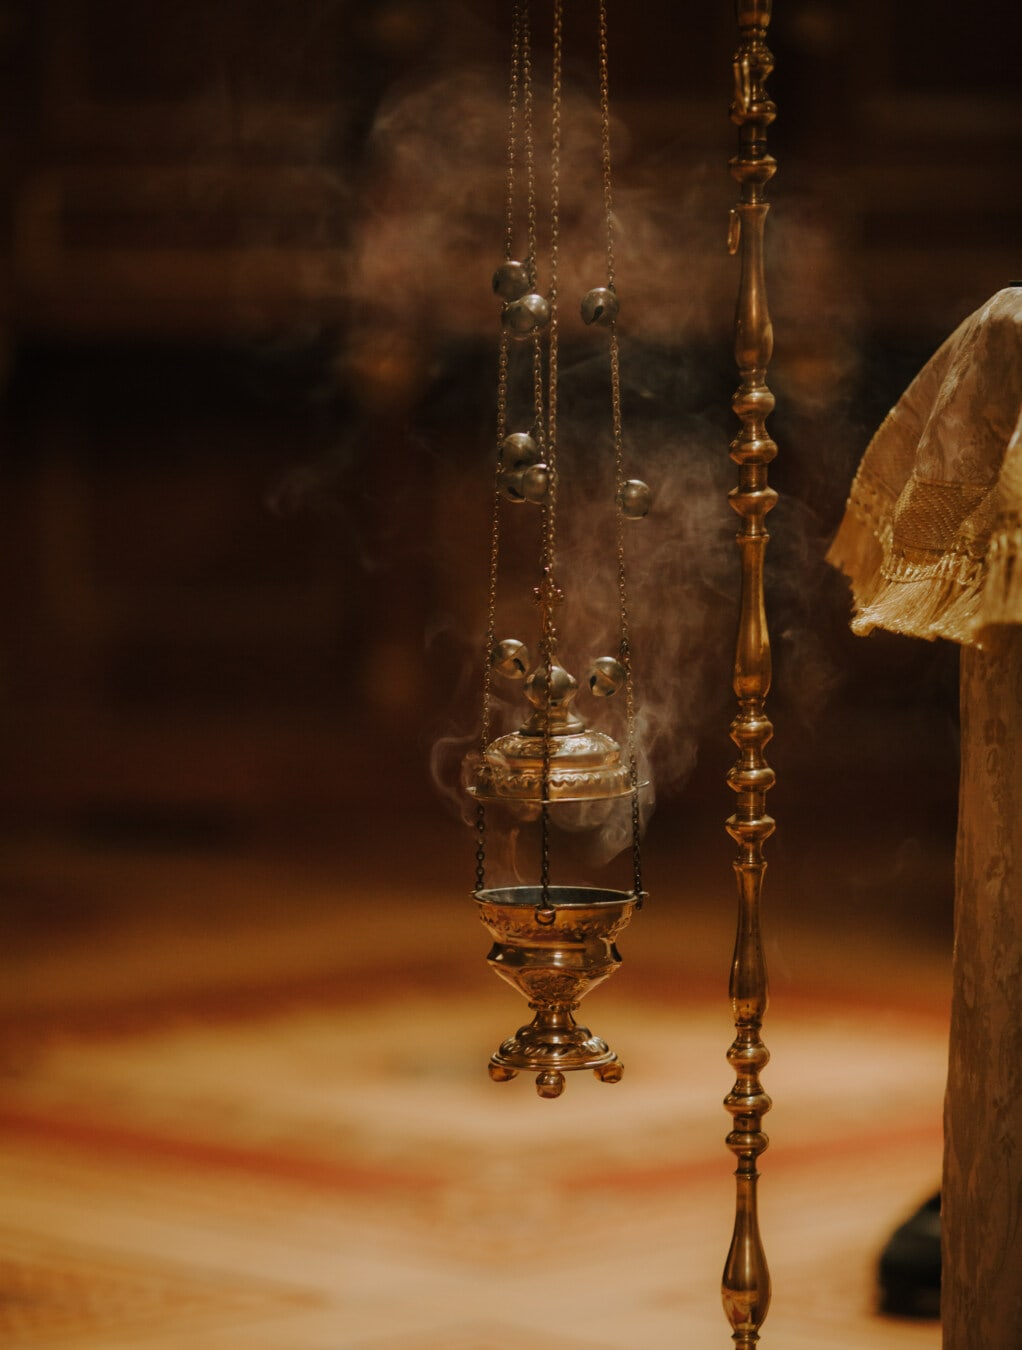 spirituality, orthodox, object, antique, relict, christianity, Byzantine, old, gold, vintage